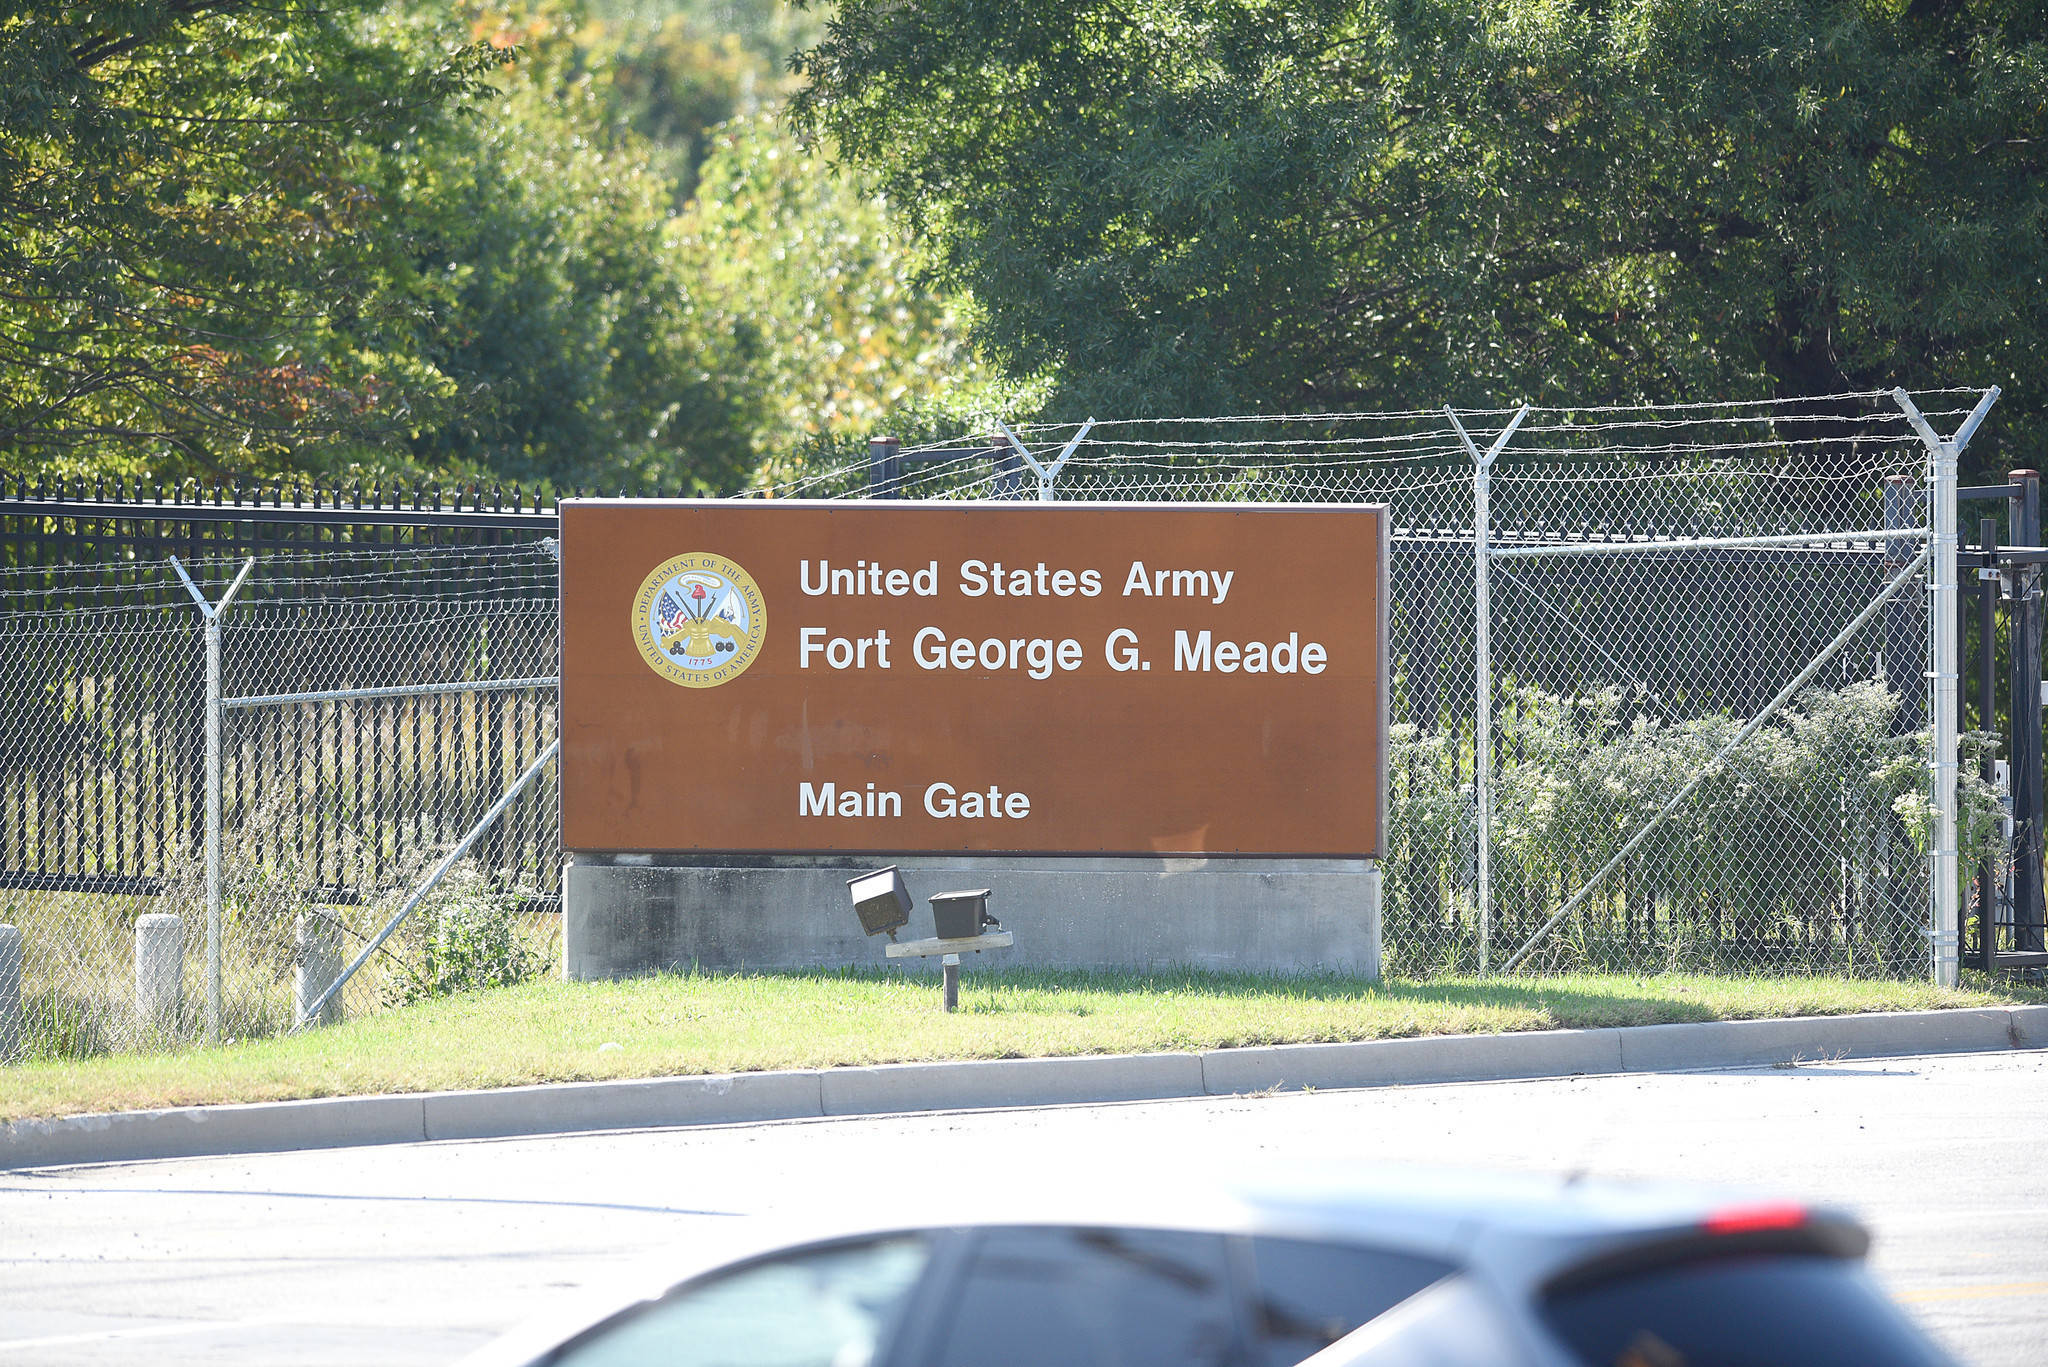 fort george g meade singles Join facebook to connect with adrienne jefferson and others you may know 2017 to present fort george g meade usag vicenza jefferson adrienne adrienne.